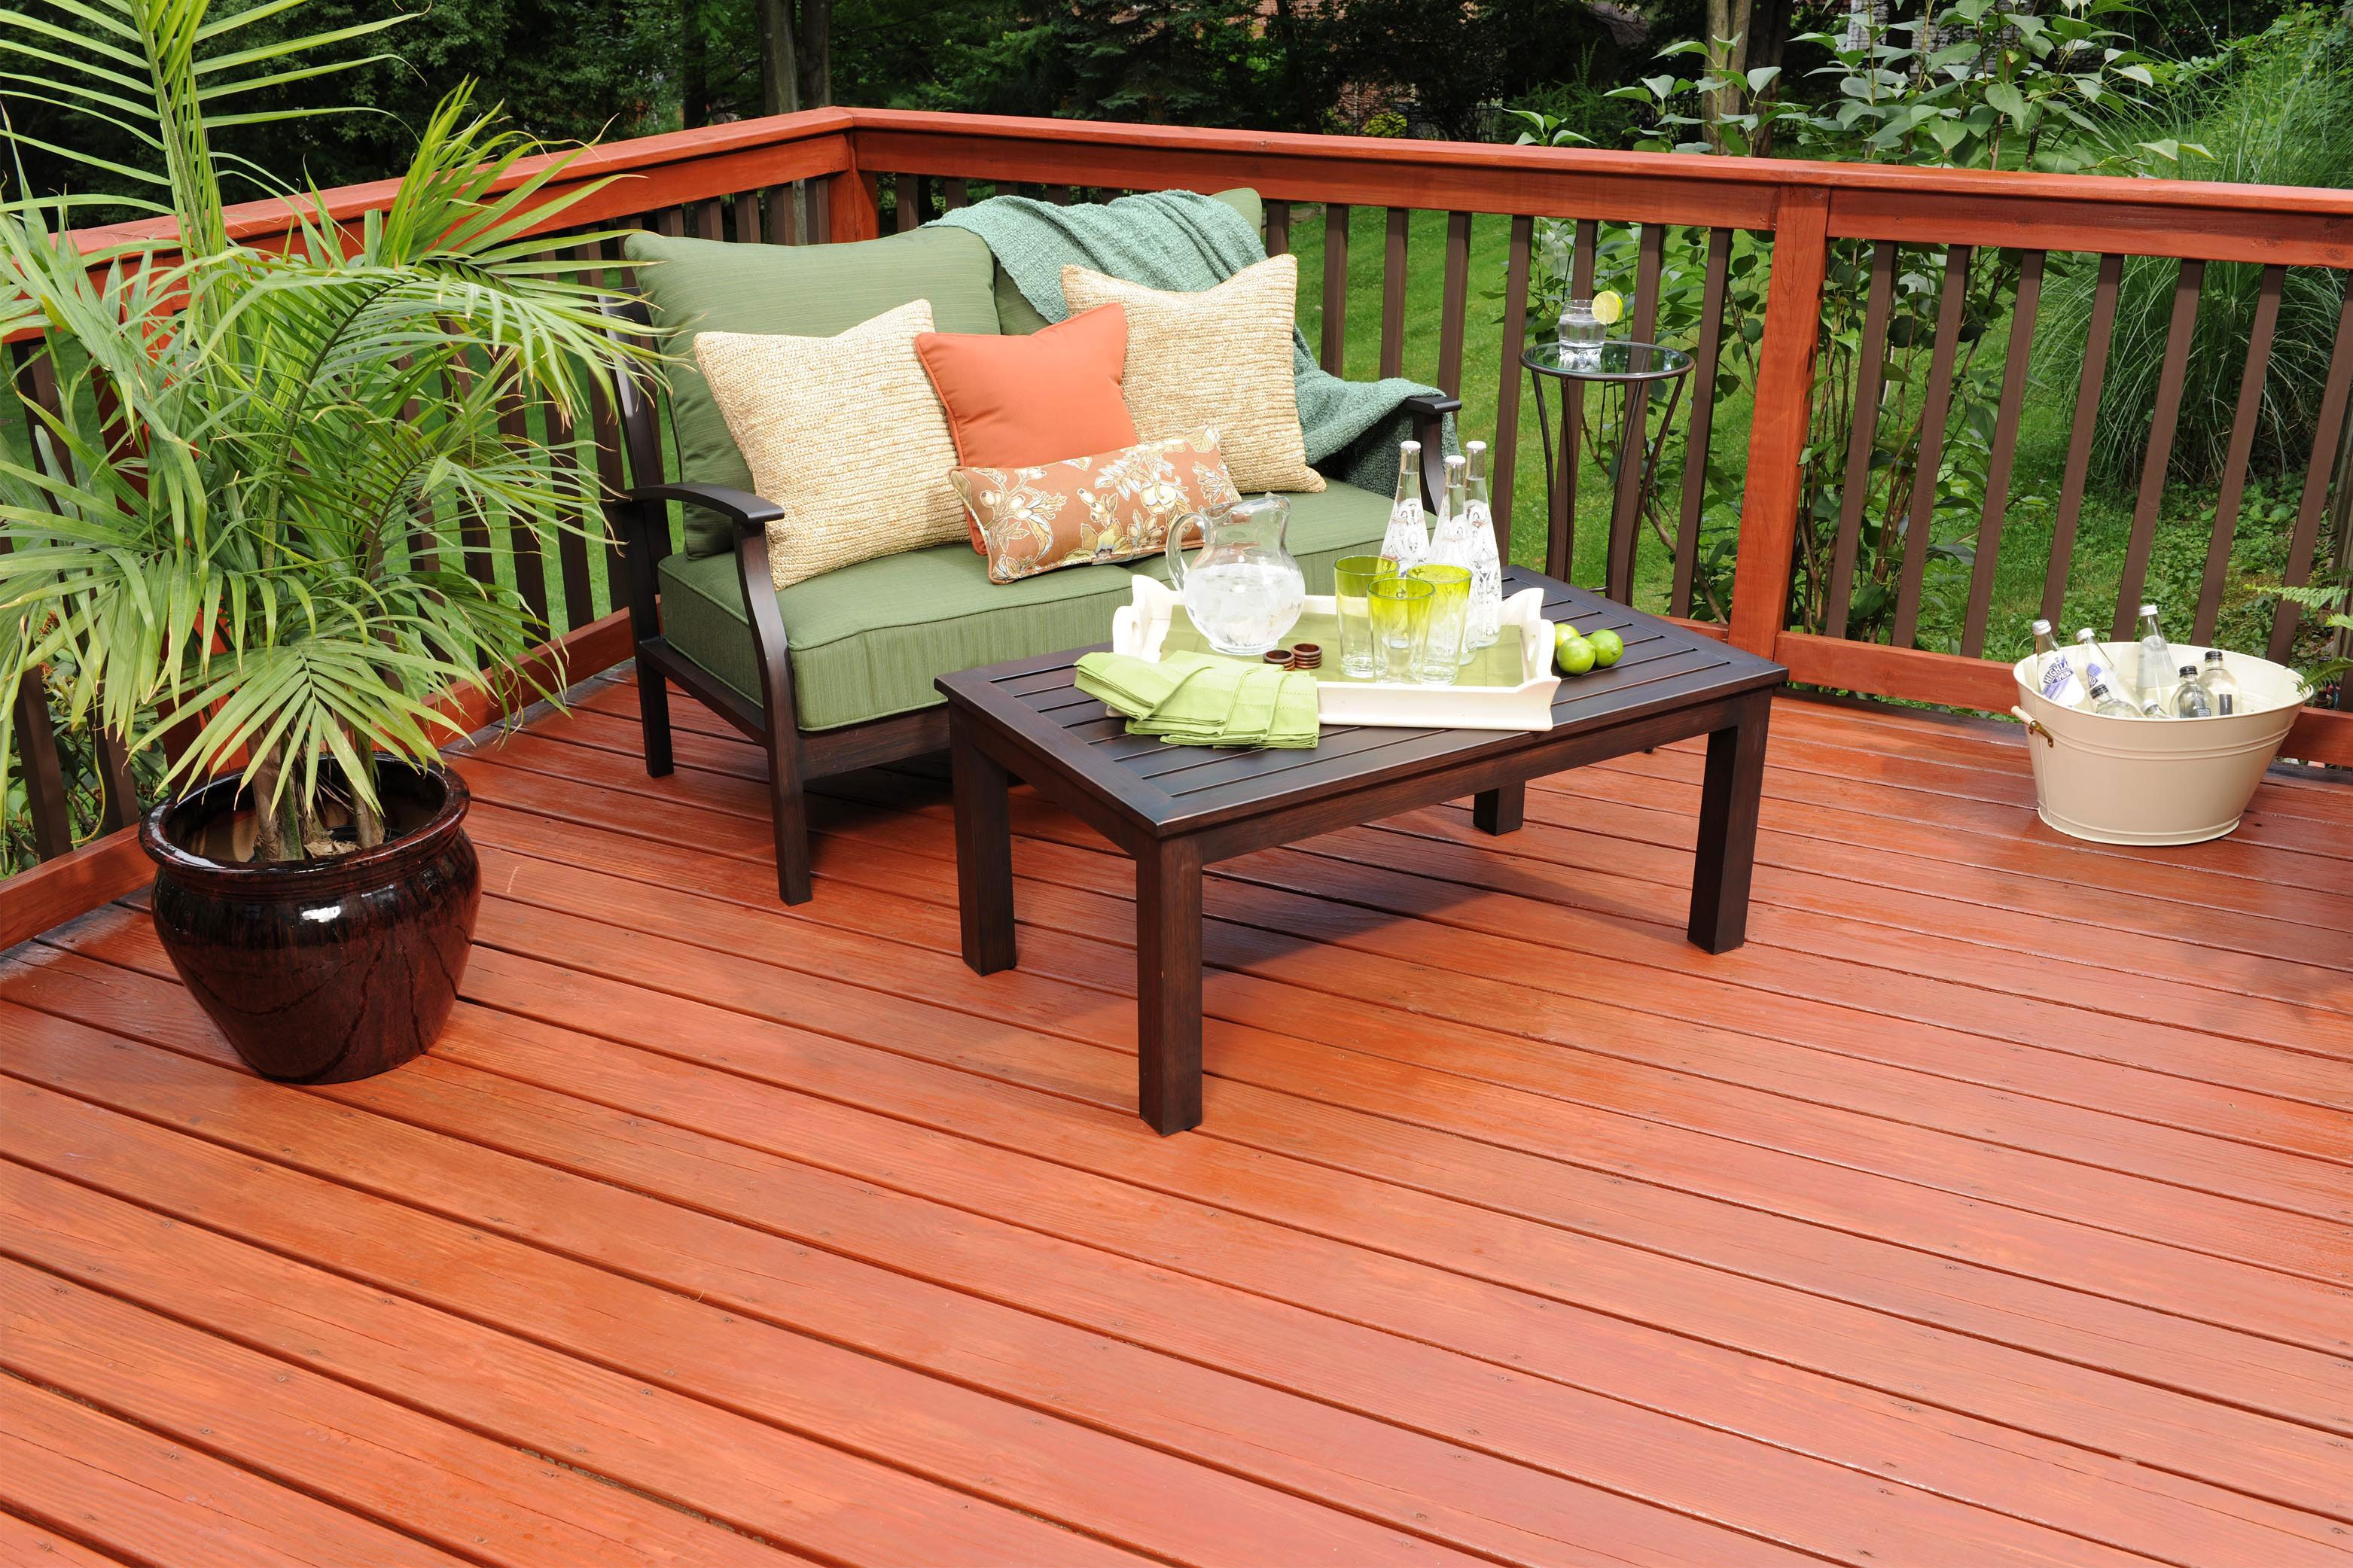 Exterior Stain Products Staining deck, Deck stain colors